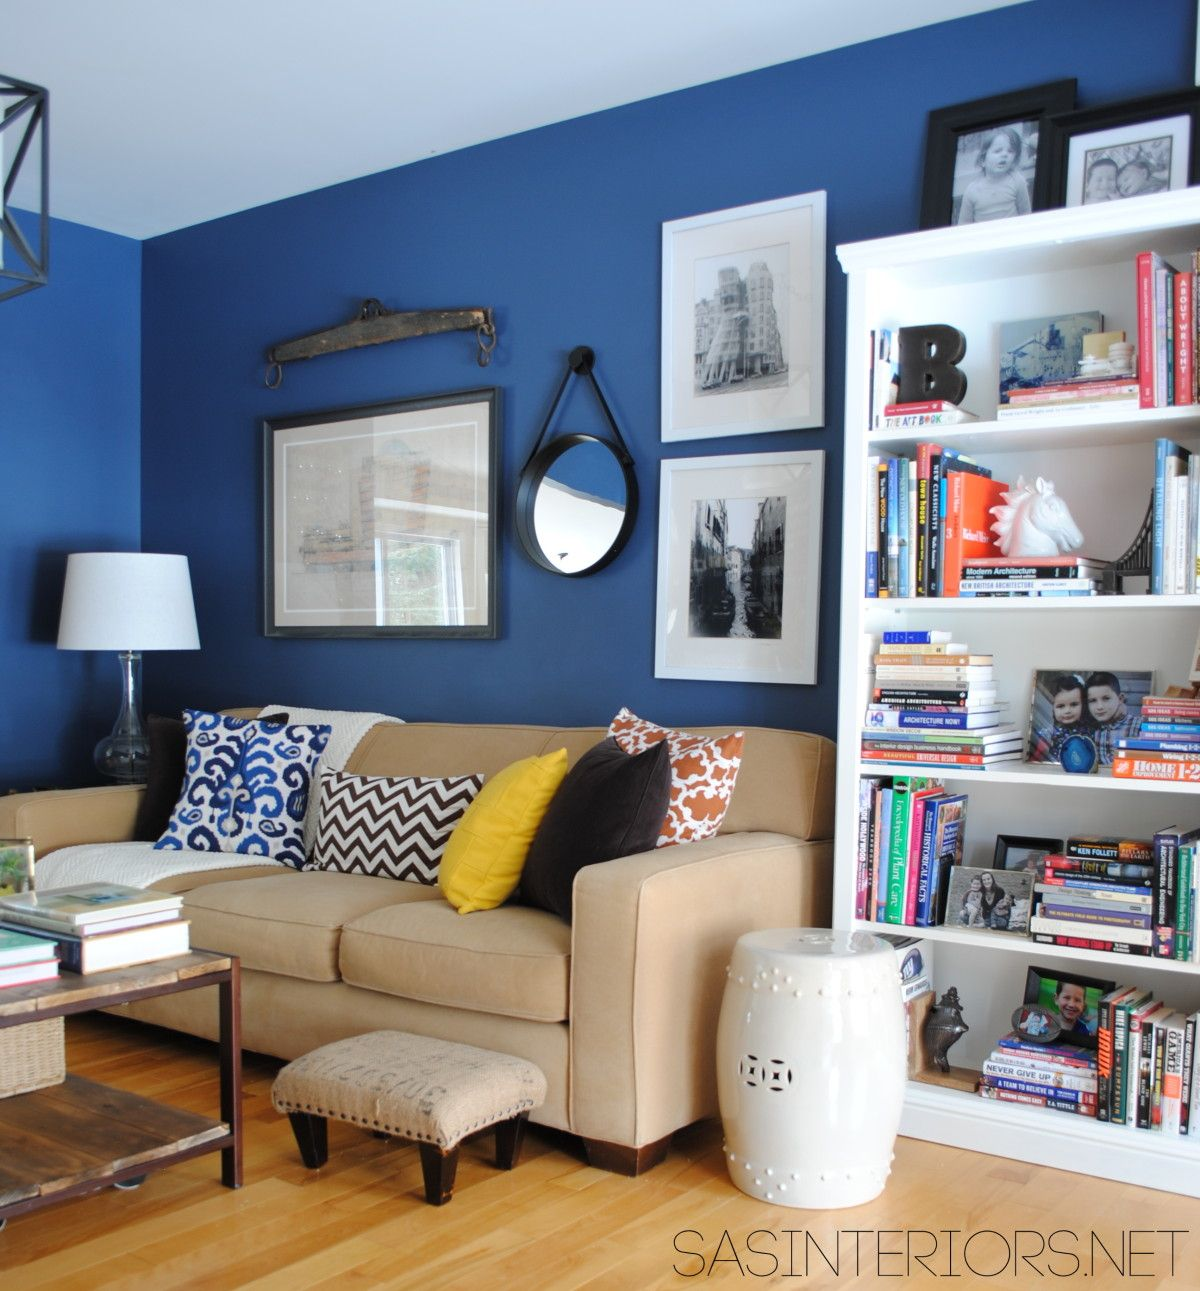 Accent Wall Ideas For A Club: Pin On Lavish Living Rooms